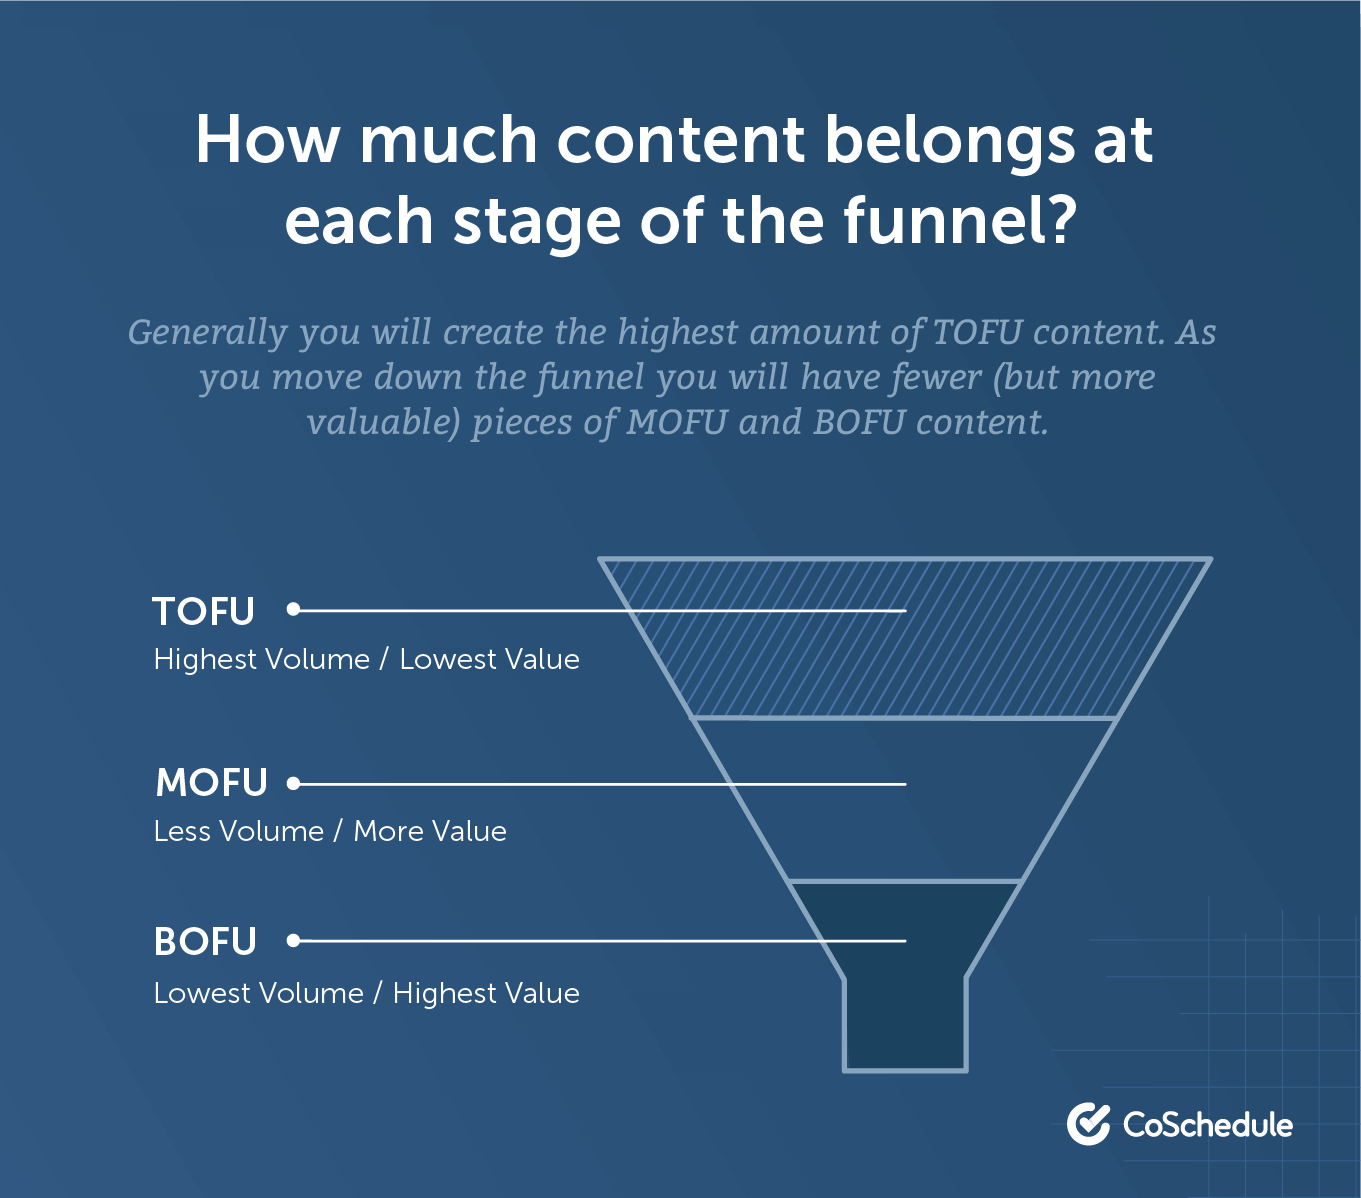 How much content belongs at each stage of the funnel?